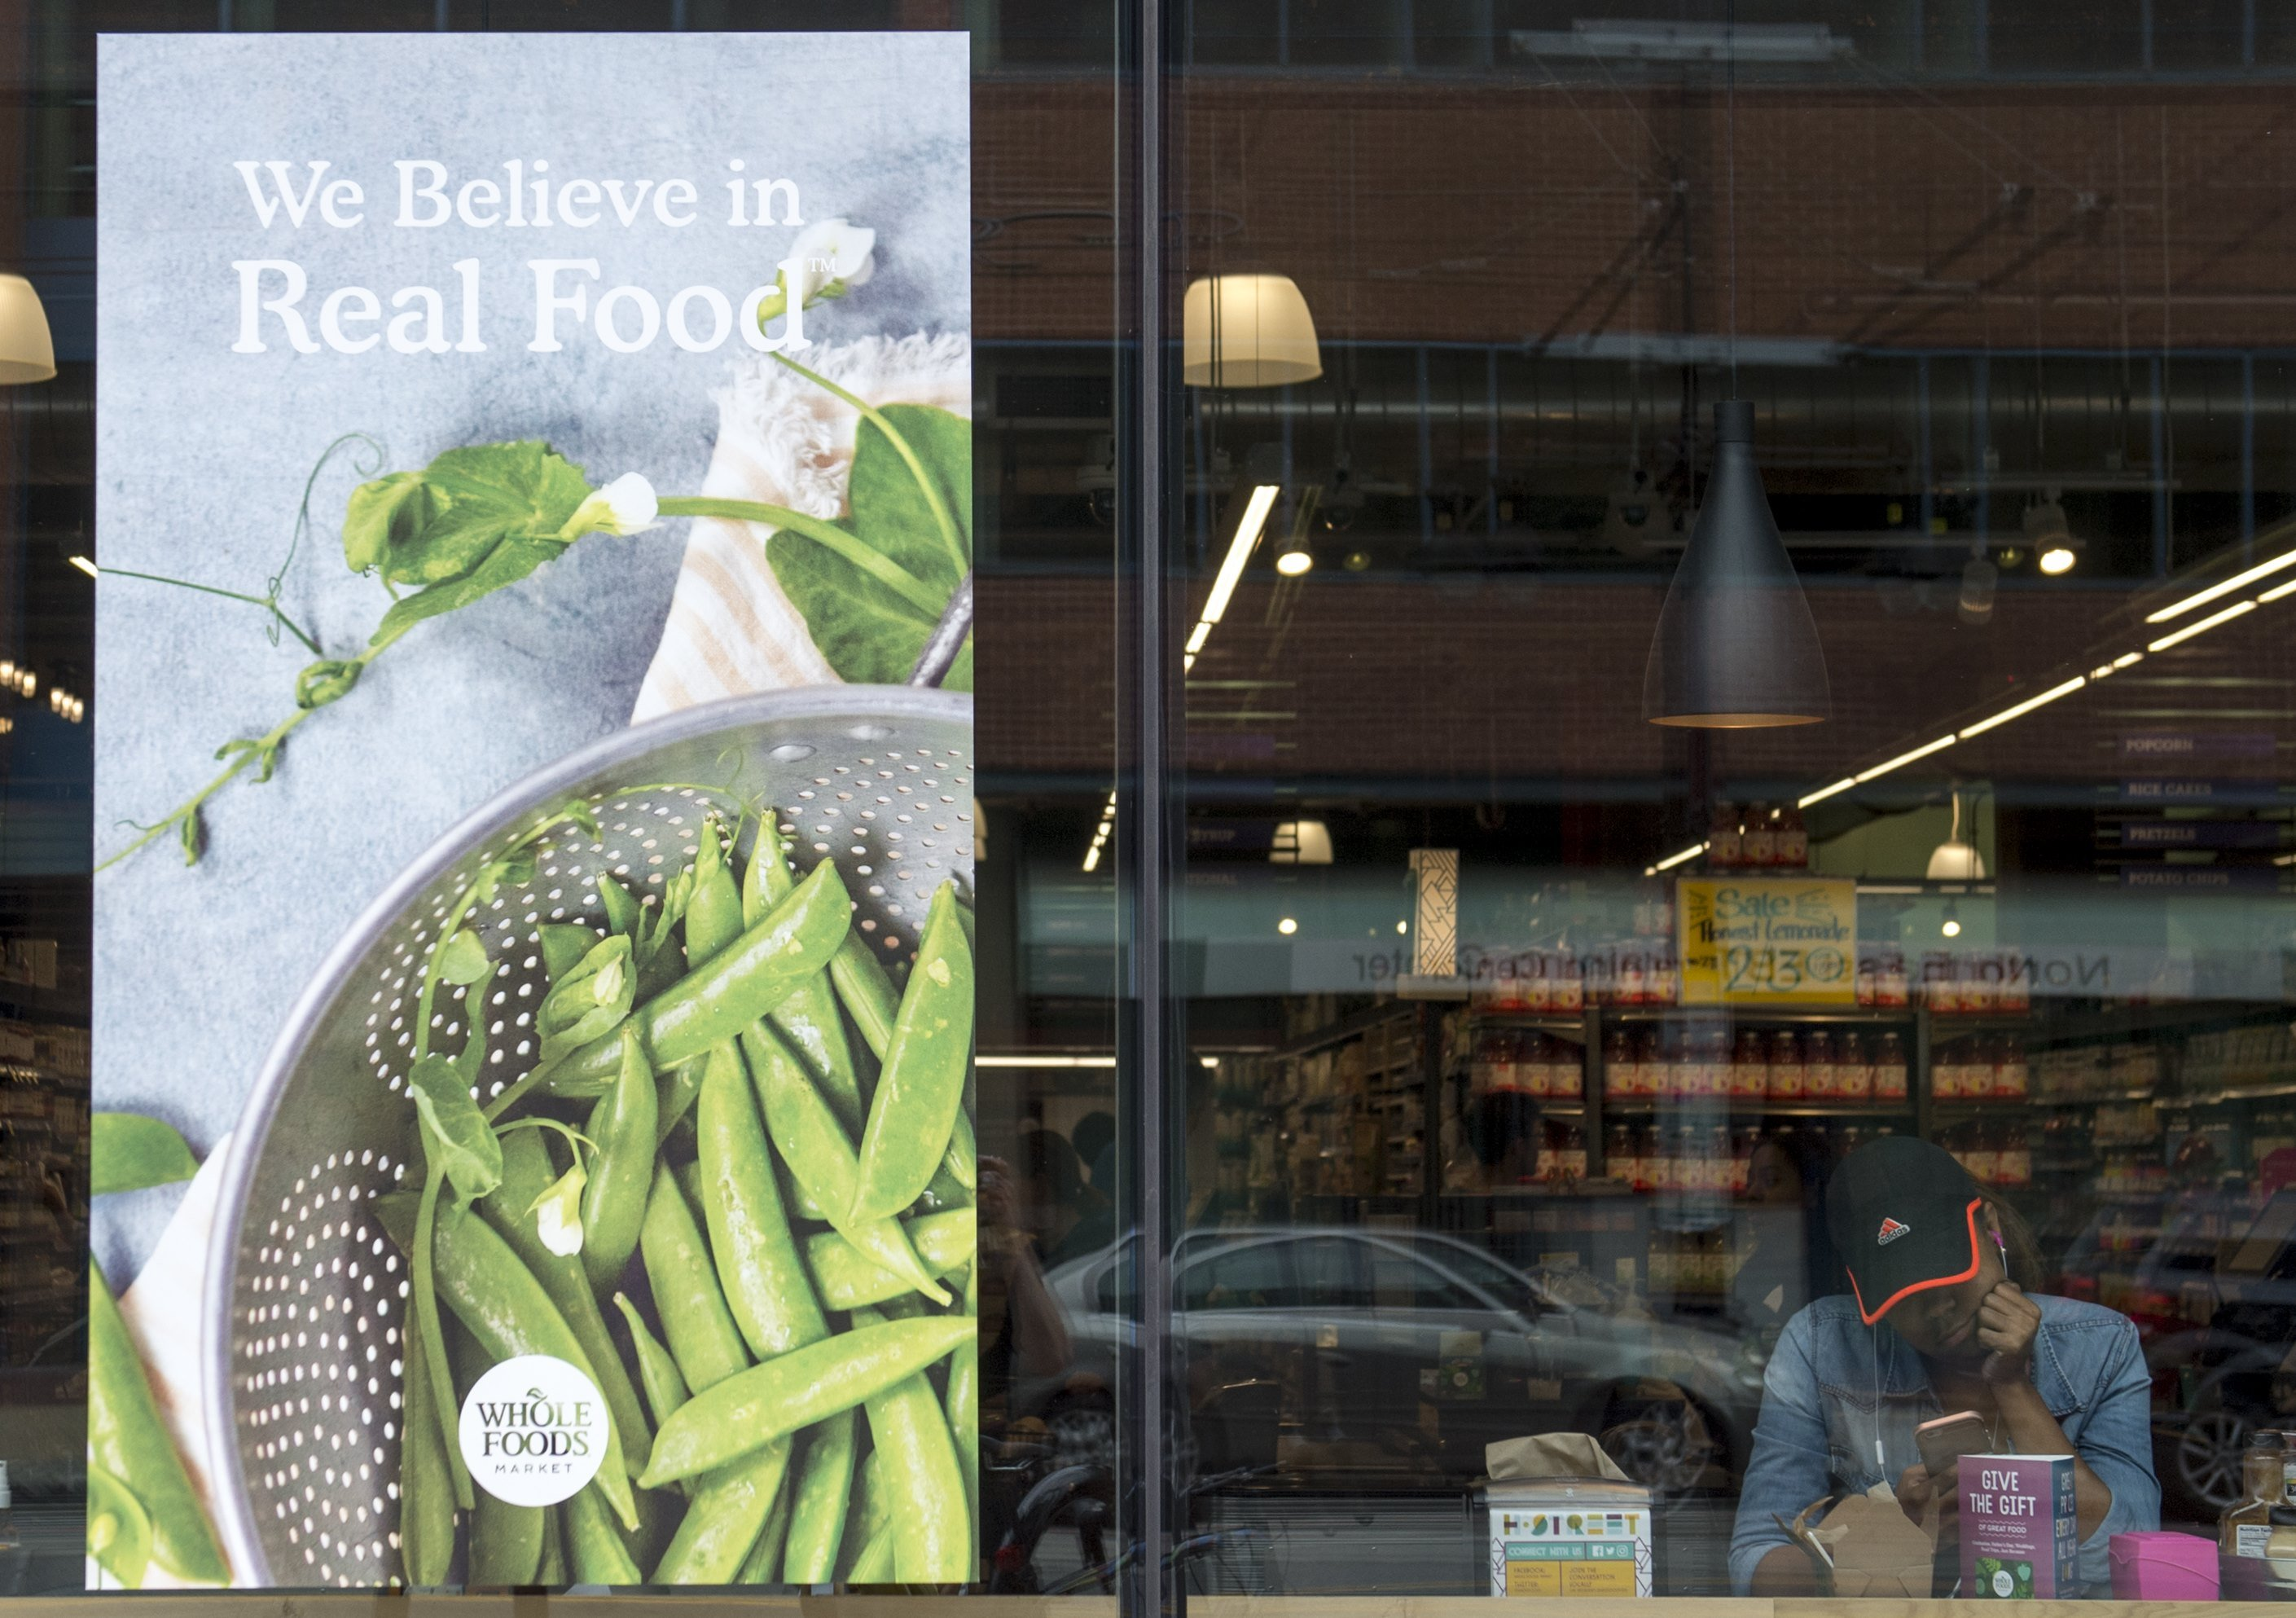 A woman looks at her phone at a Whole Foods Market in Washington, DC, June 16, 2017, following the announcement that Amazon would purchase the supermarket chain for $13.7 billion. (SAUL LOEB/AFP/Getty Images)